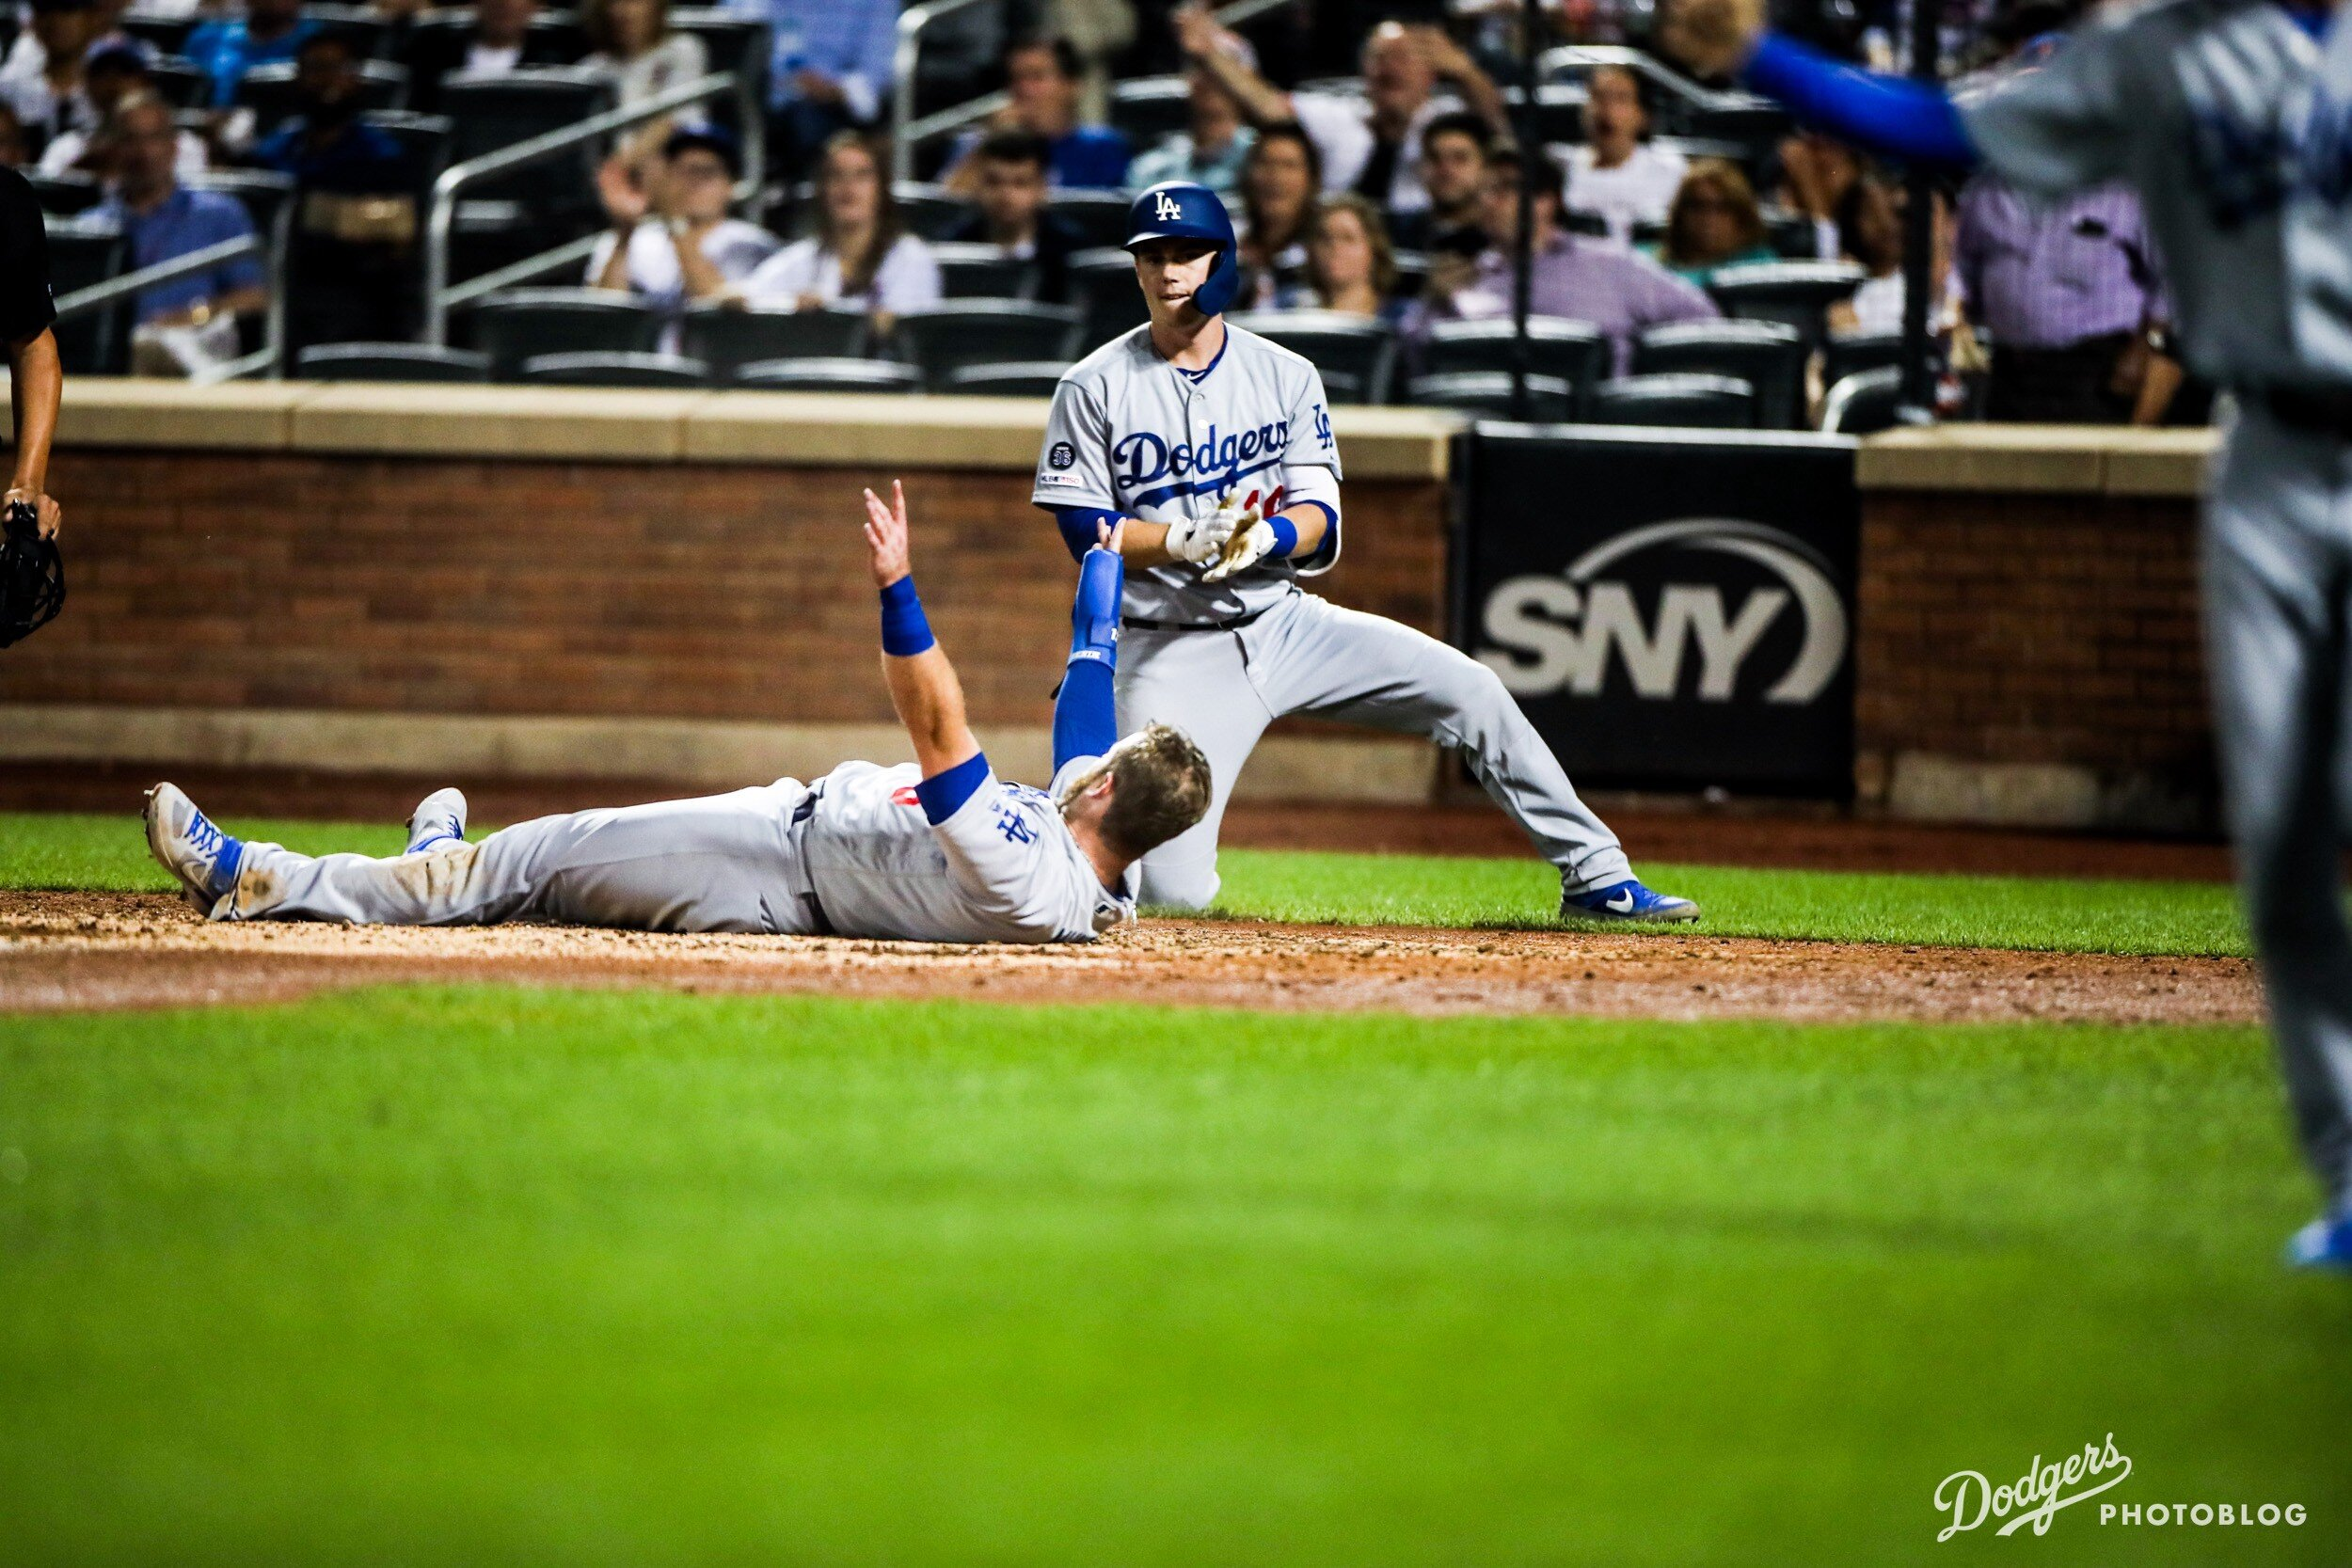 Max Muncy laying on the ground after scoring a run. Lucas Stevenson/MLB.com